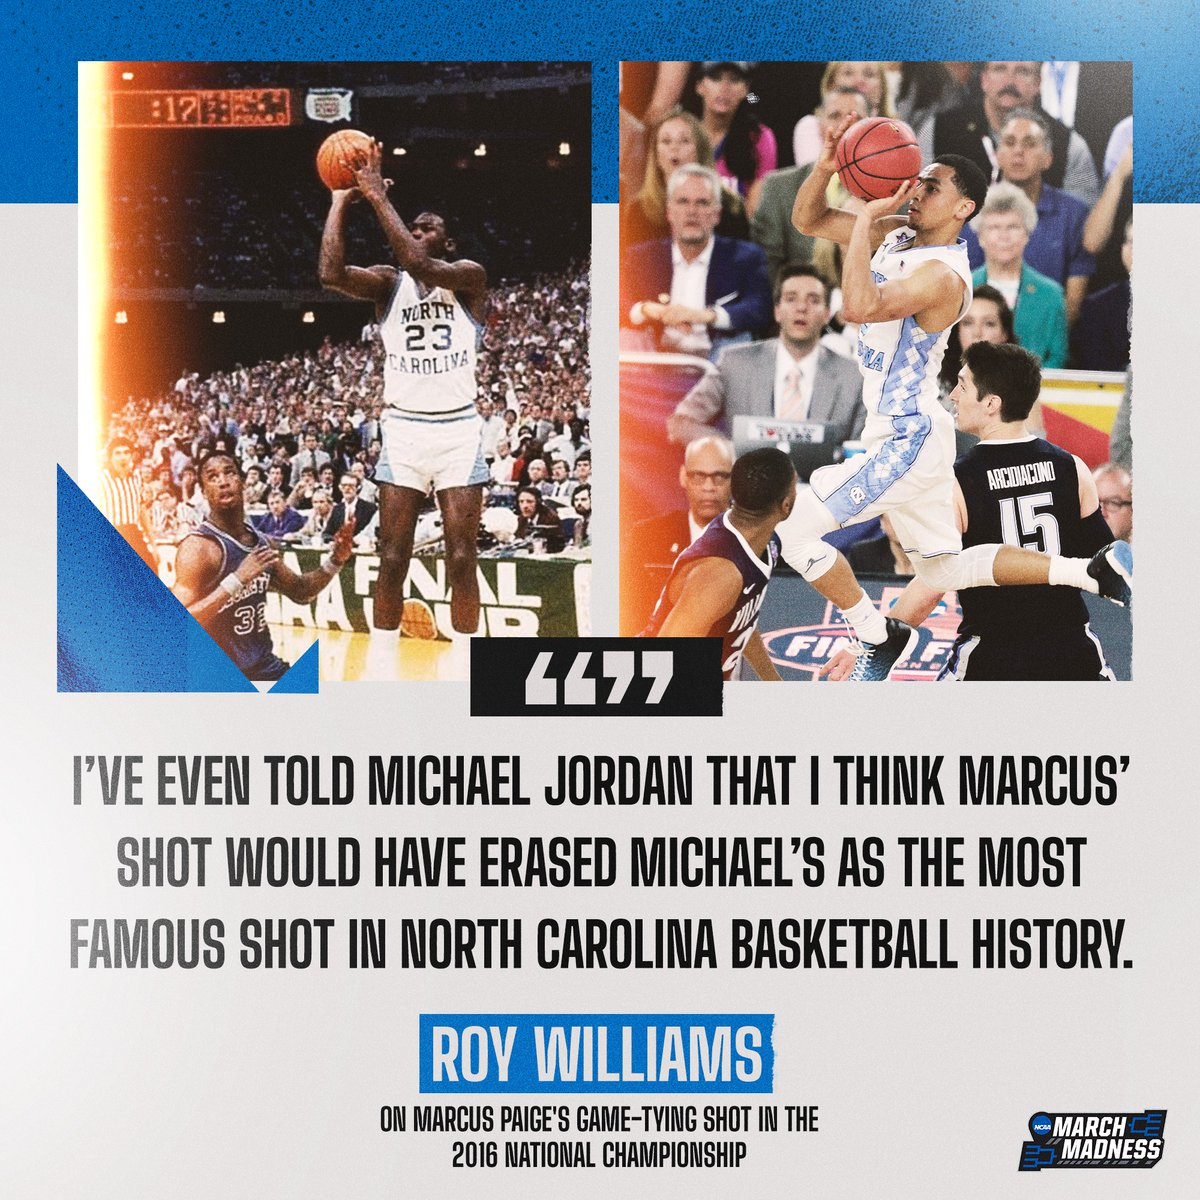 .@UNC_Basketball has a history of clutch shooters 👀  Hear more from Roy Williams on the #MM365 pod with @TheAndyKatz. 🎧 https://t.co/zpcSxPxl97 https://t.co/MyWvAnNYr6